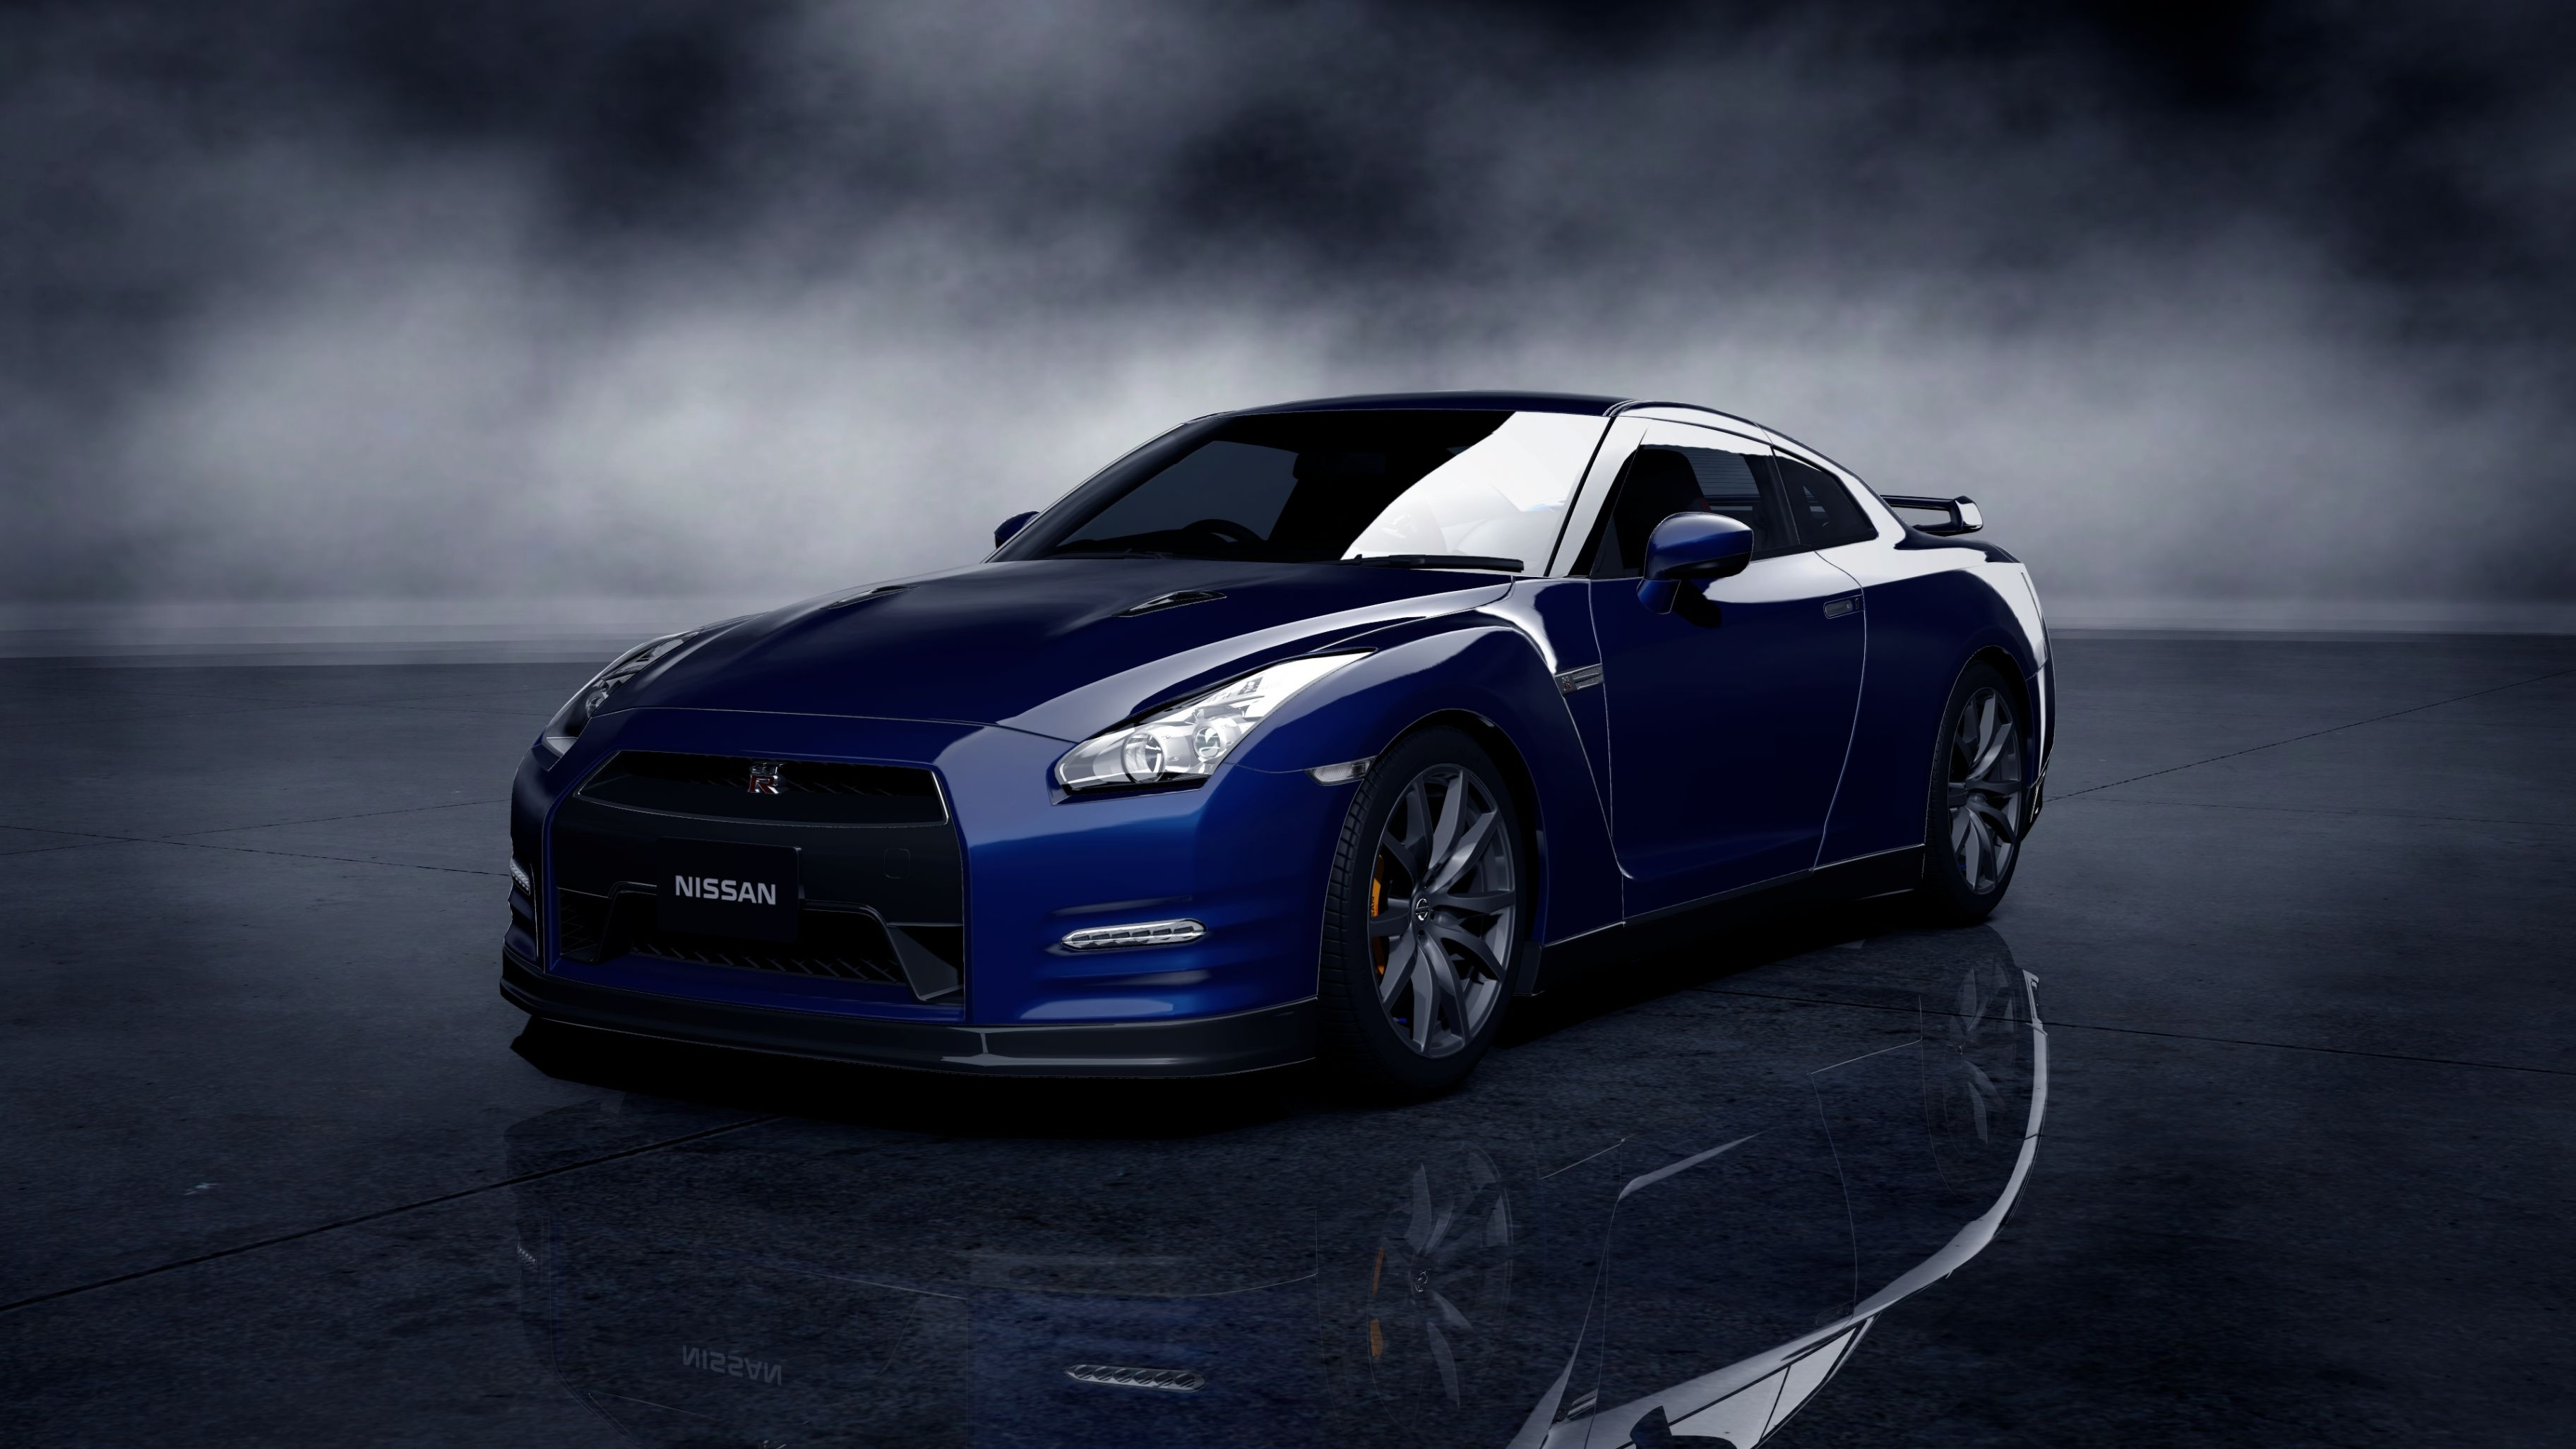 blue nissan gt-r wallpapers - top free blue nissan gt-r backgrounds